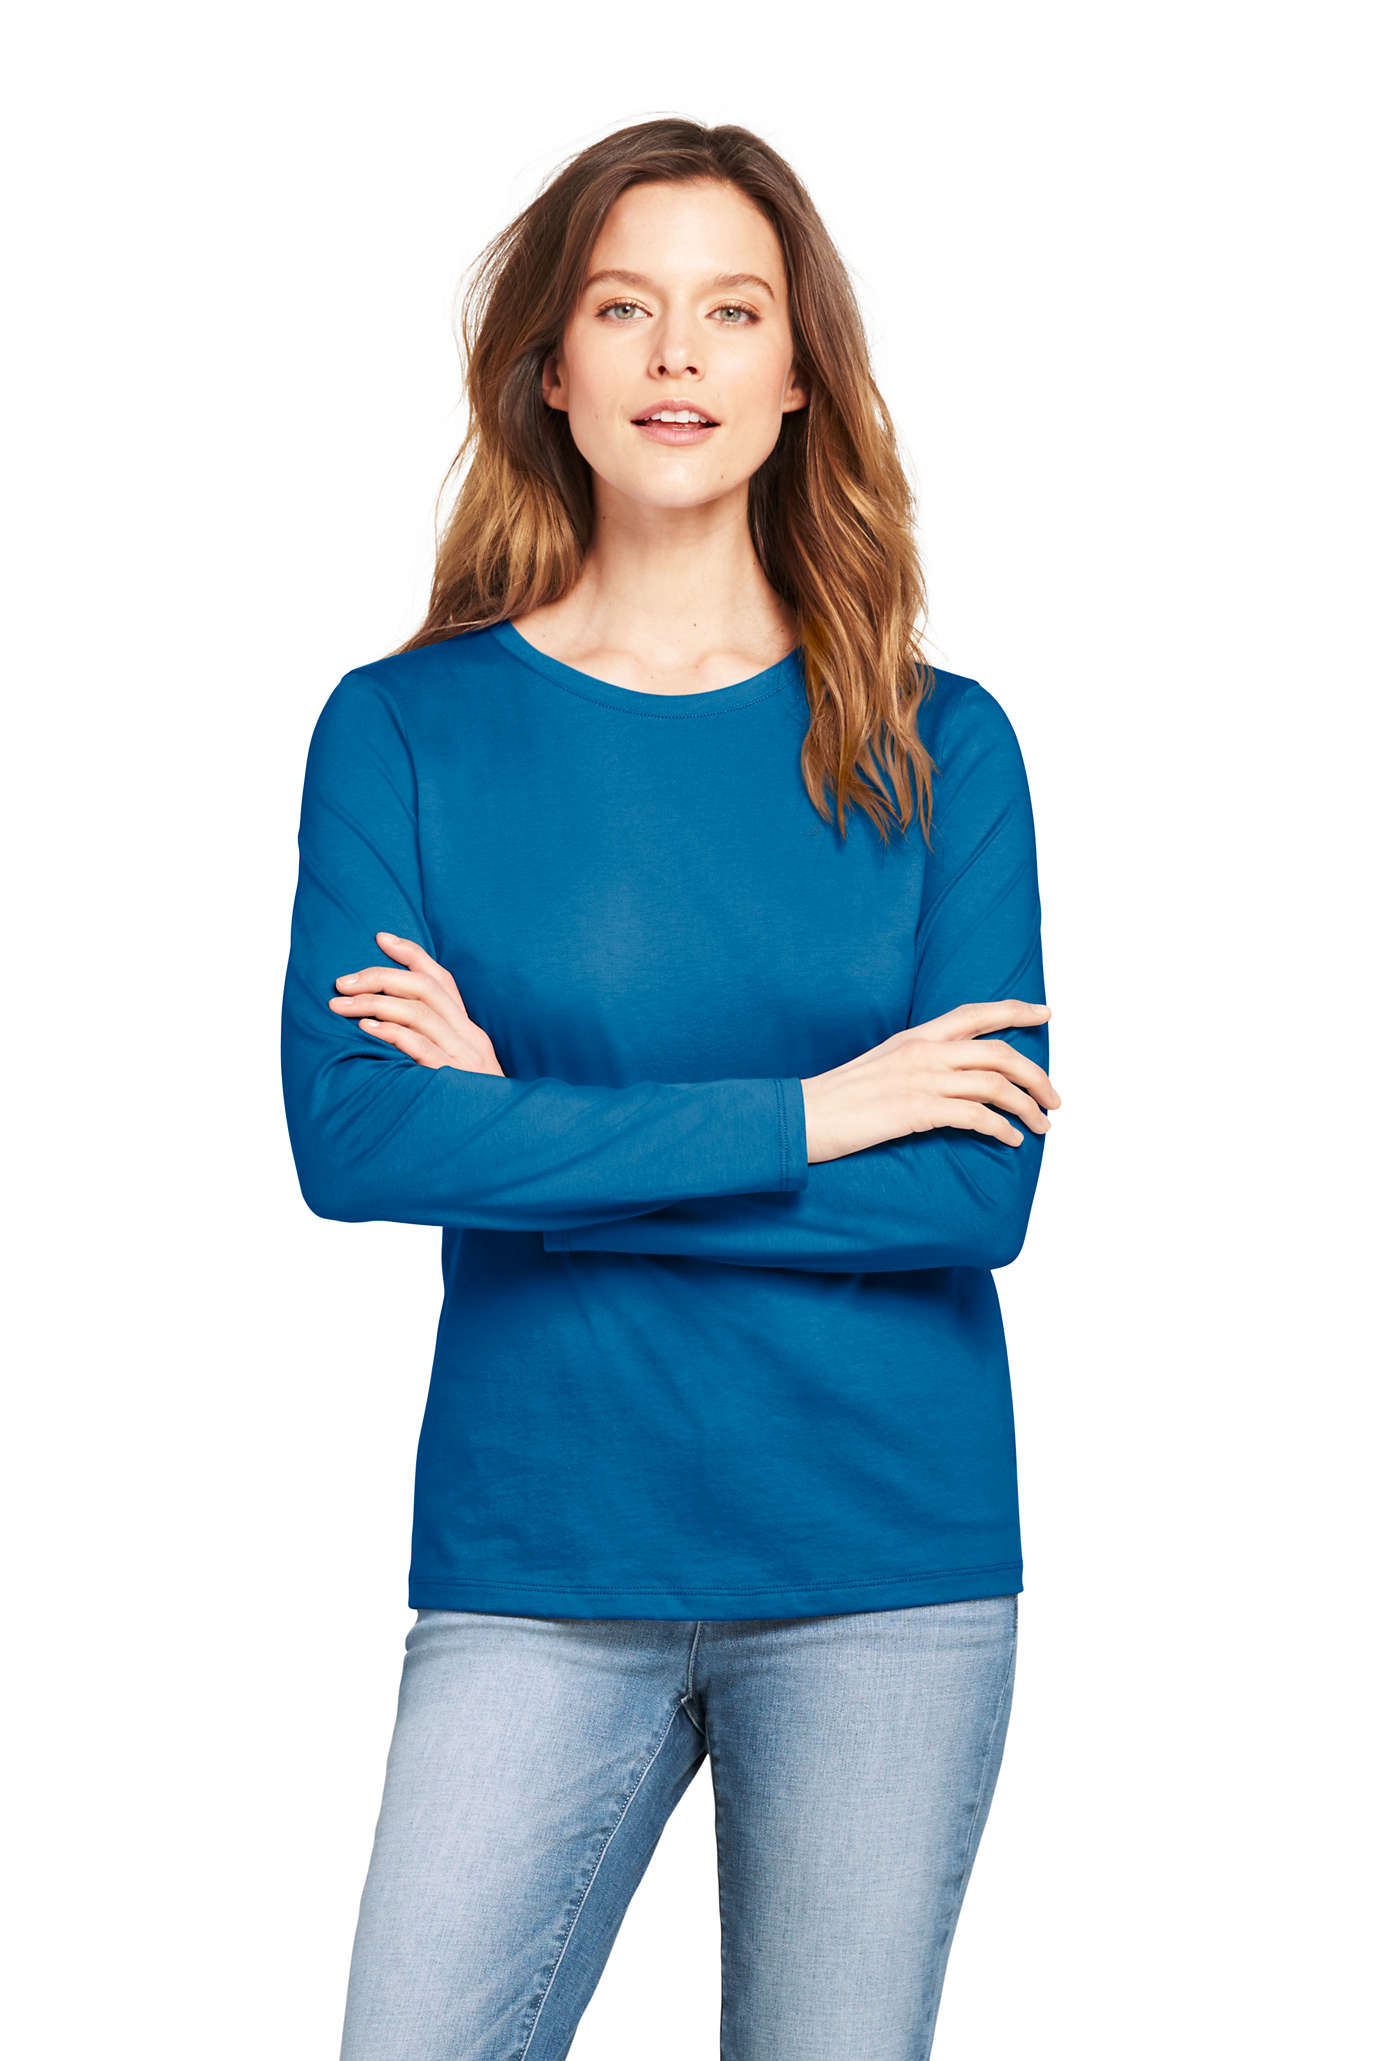 d8d4053ec6f0bf Women's Tops & Tees | Lands' End